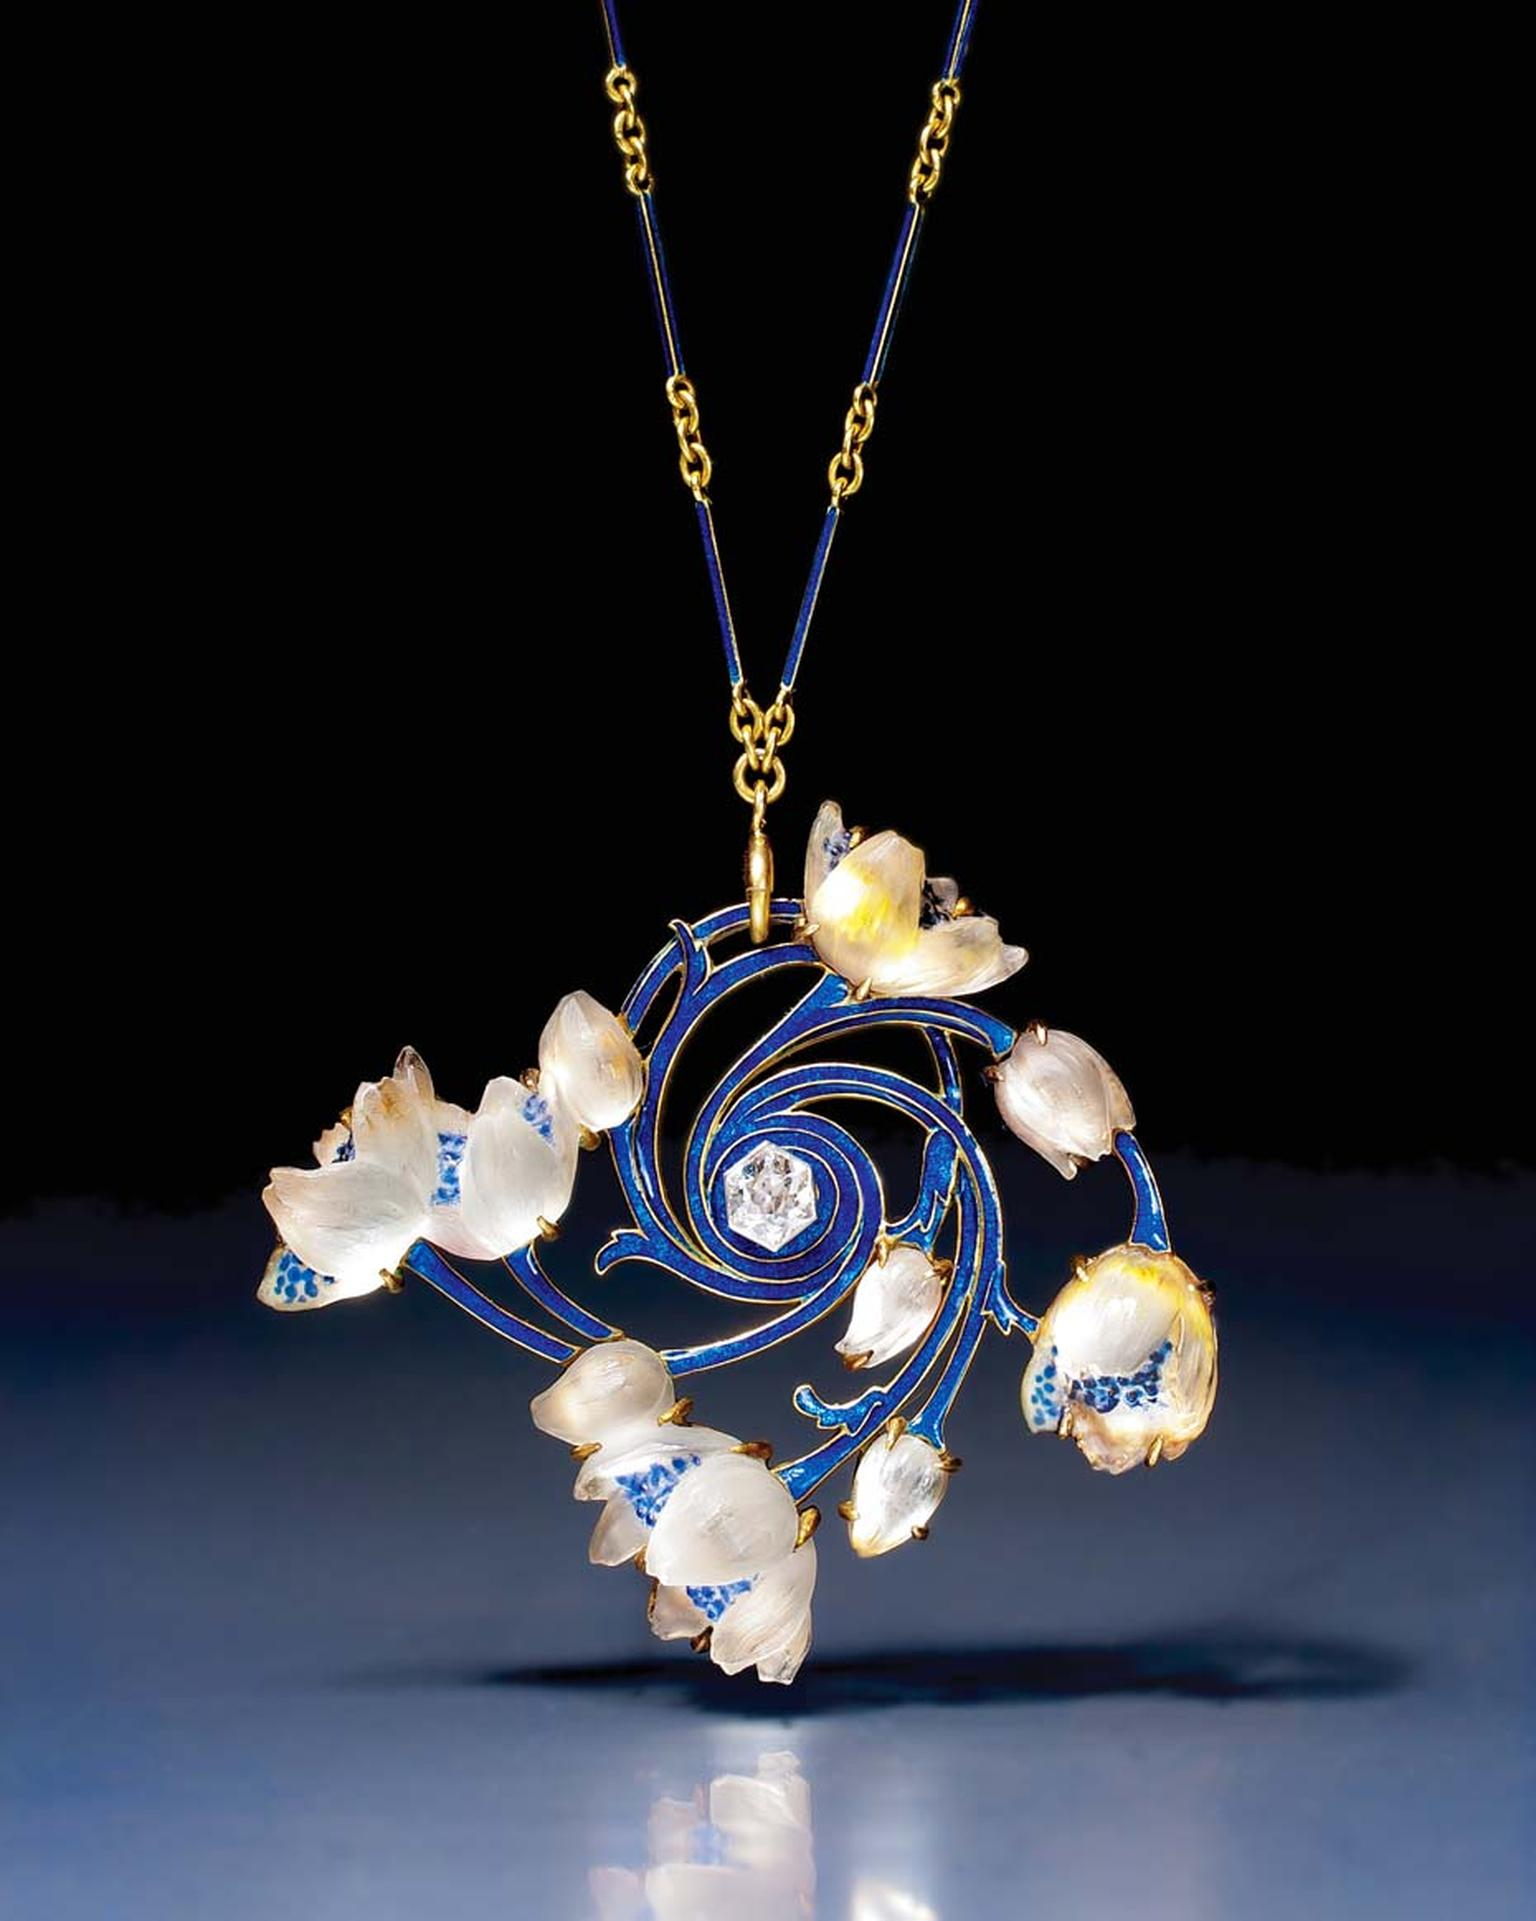 Art Nouveau gold, enamel, glass and diamond wood anemone pendant/brooch by René Lalique. Exhibited by Epoque Fine Jewels.